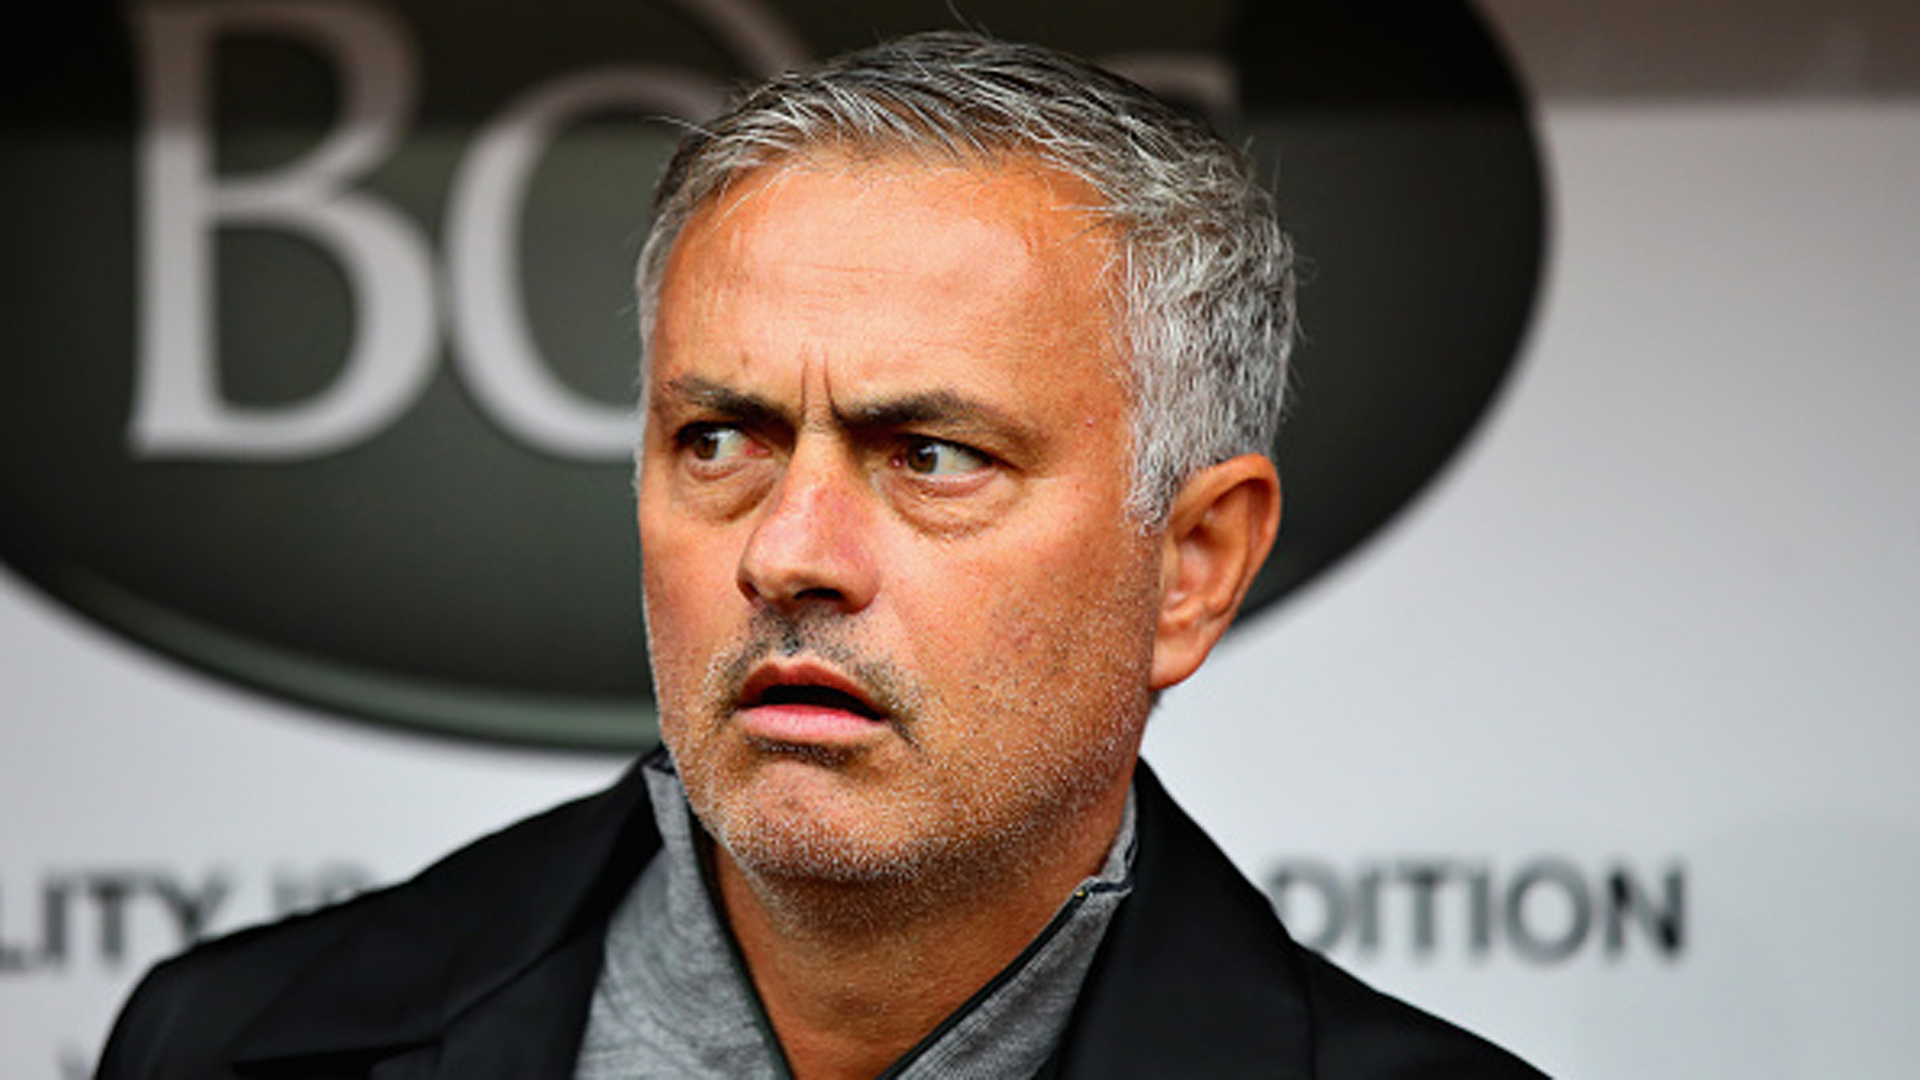 Manchester United Will Not Sack Jose Mourinho Before Their Season Ends